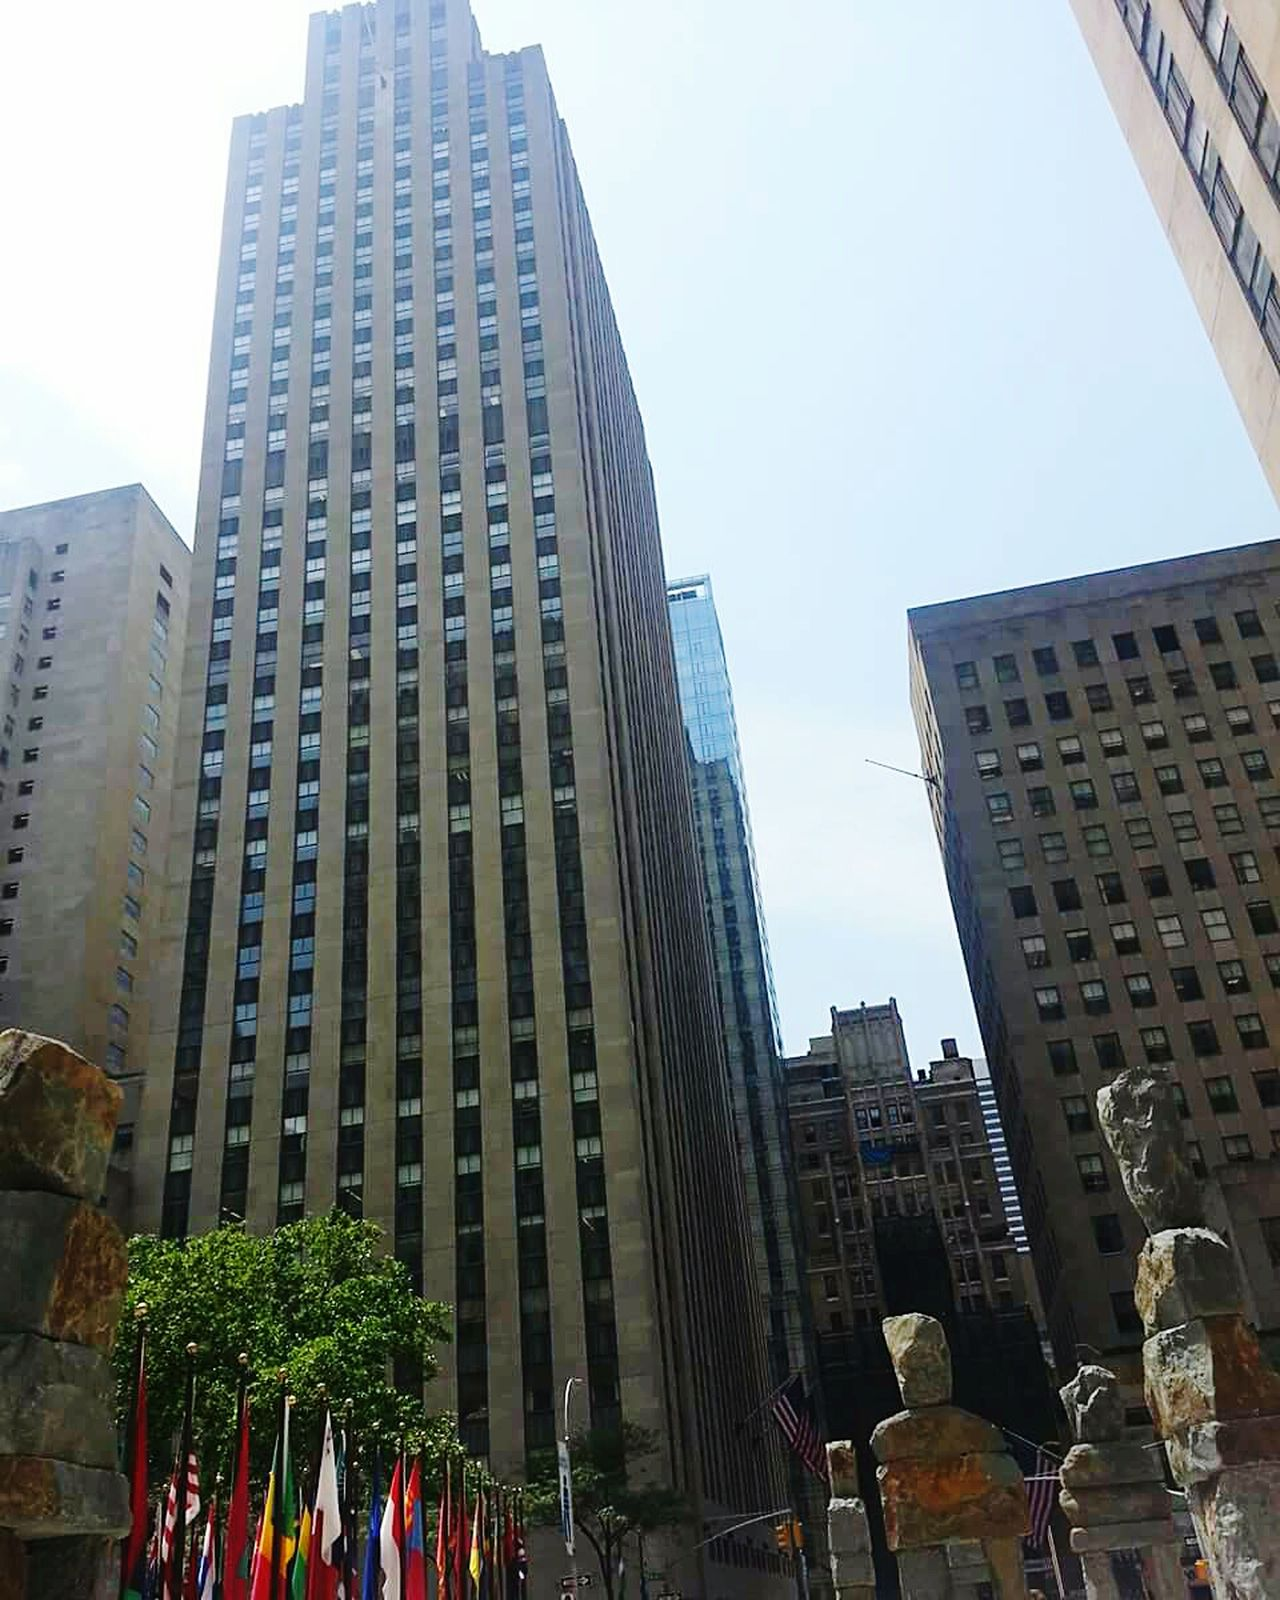 City Skyscraper Architecture Modern Business Finance And Industry Urban Skyline Travel Destinations Building Exterior Outdoors Cityscape Downtown District No People Day Rockefeller Center With Internationl Flags, New York, US Rockefeller Livetotravel Rockefellercentre NYC Street Photography Rockefeller Center, New York Live, Love, Laugh Love Life Livethemoment NYC LIFE ♥ Living Life To The Fullest❤ Love❤